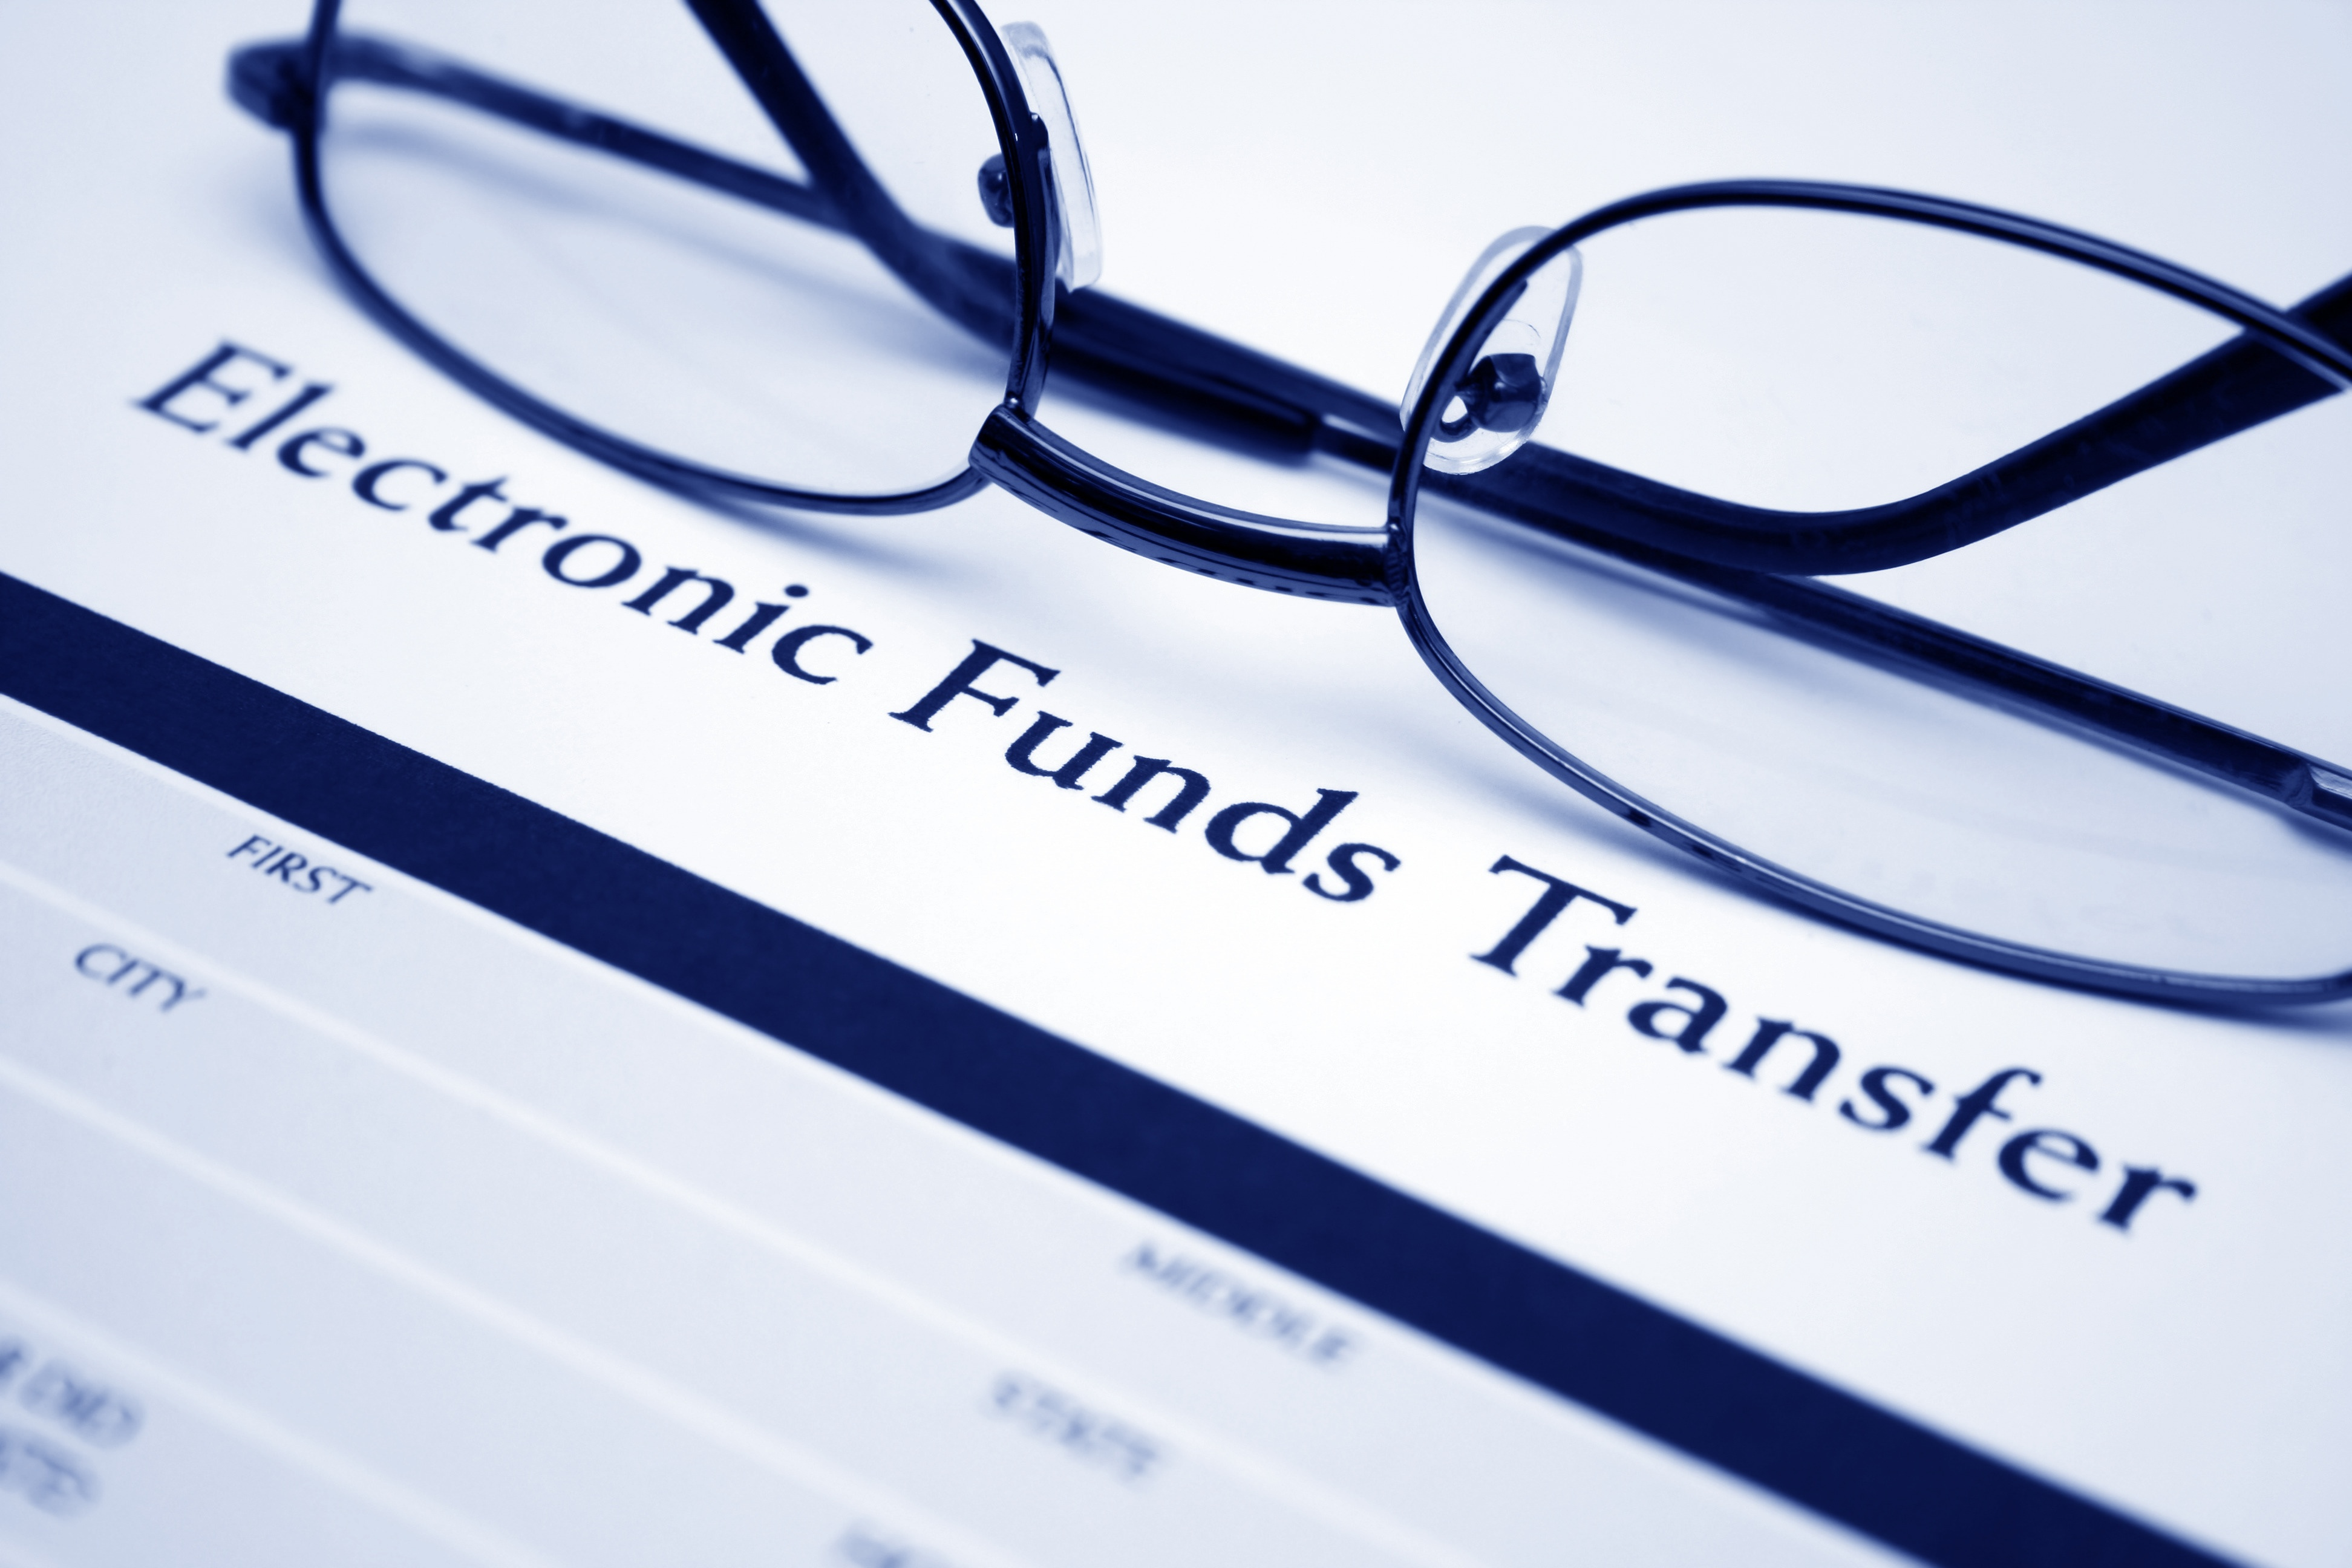 electronic-funds-transfer_fkRgBOw_.jpg